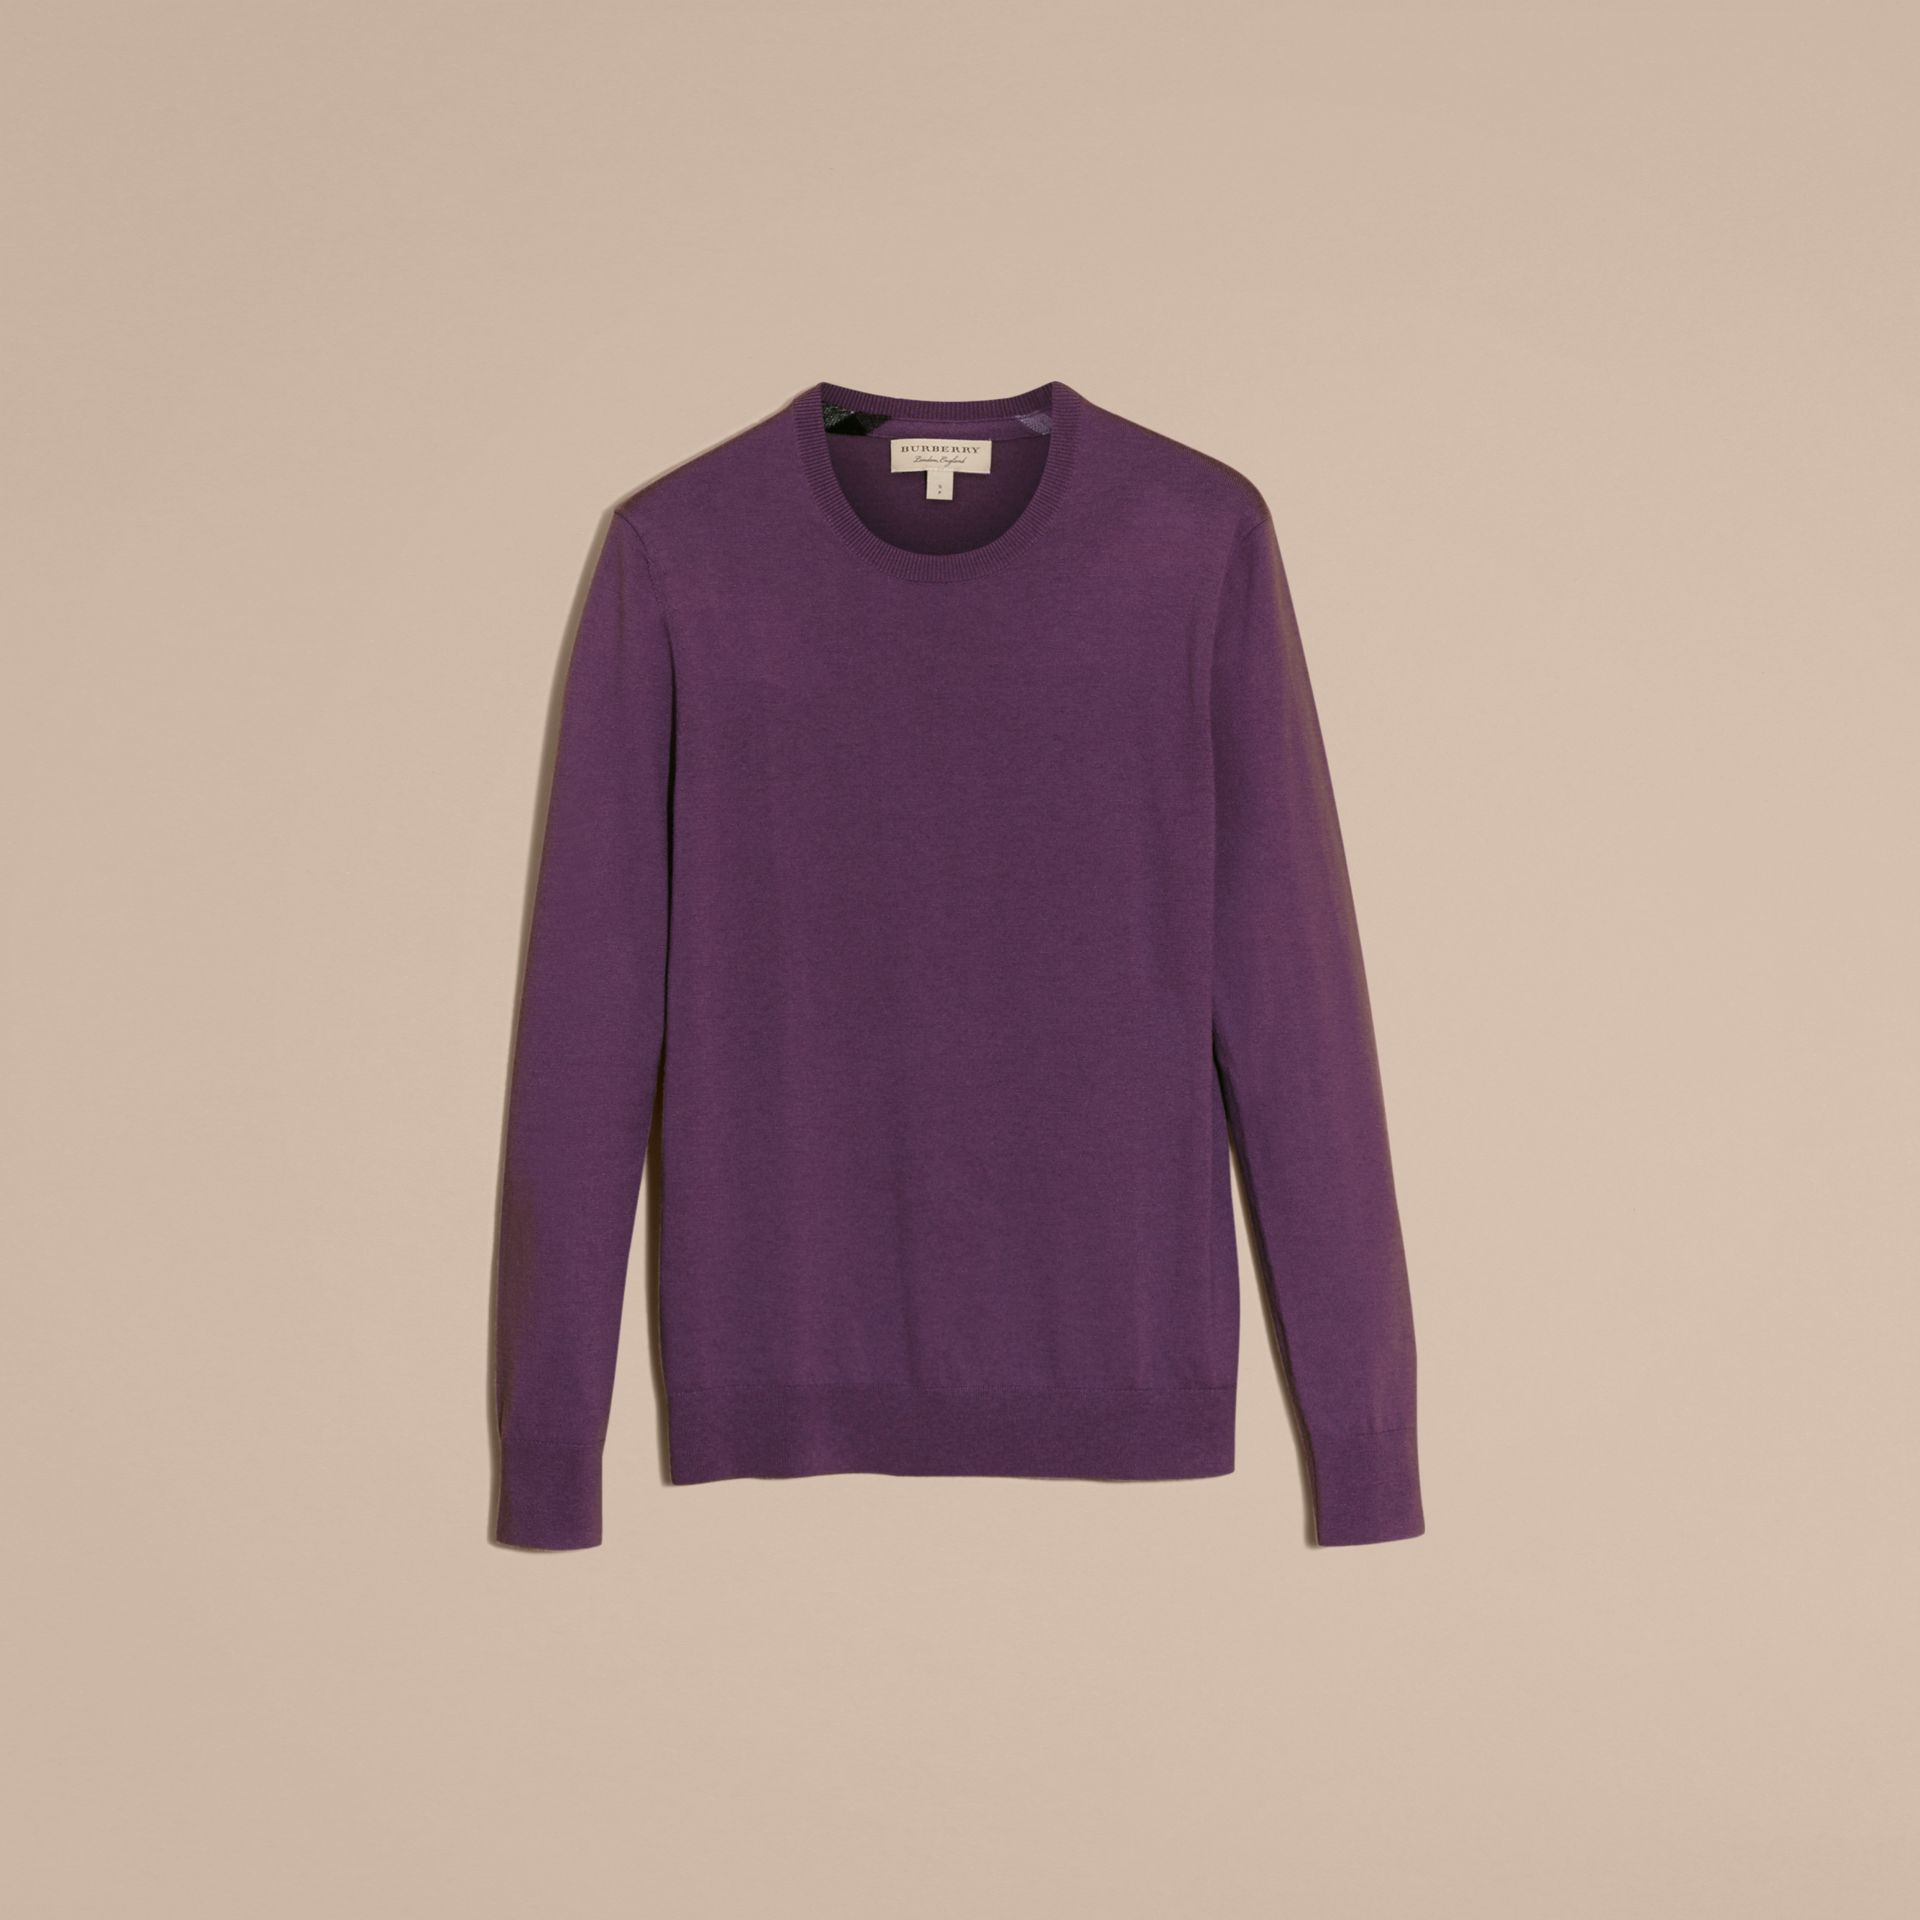 Dusty lilac Lightweight Crew Neck Cashmere Sweater with Check Trim Dusty Lilac - gallery image 4